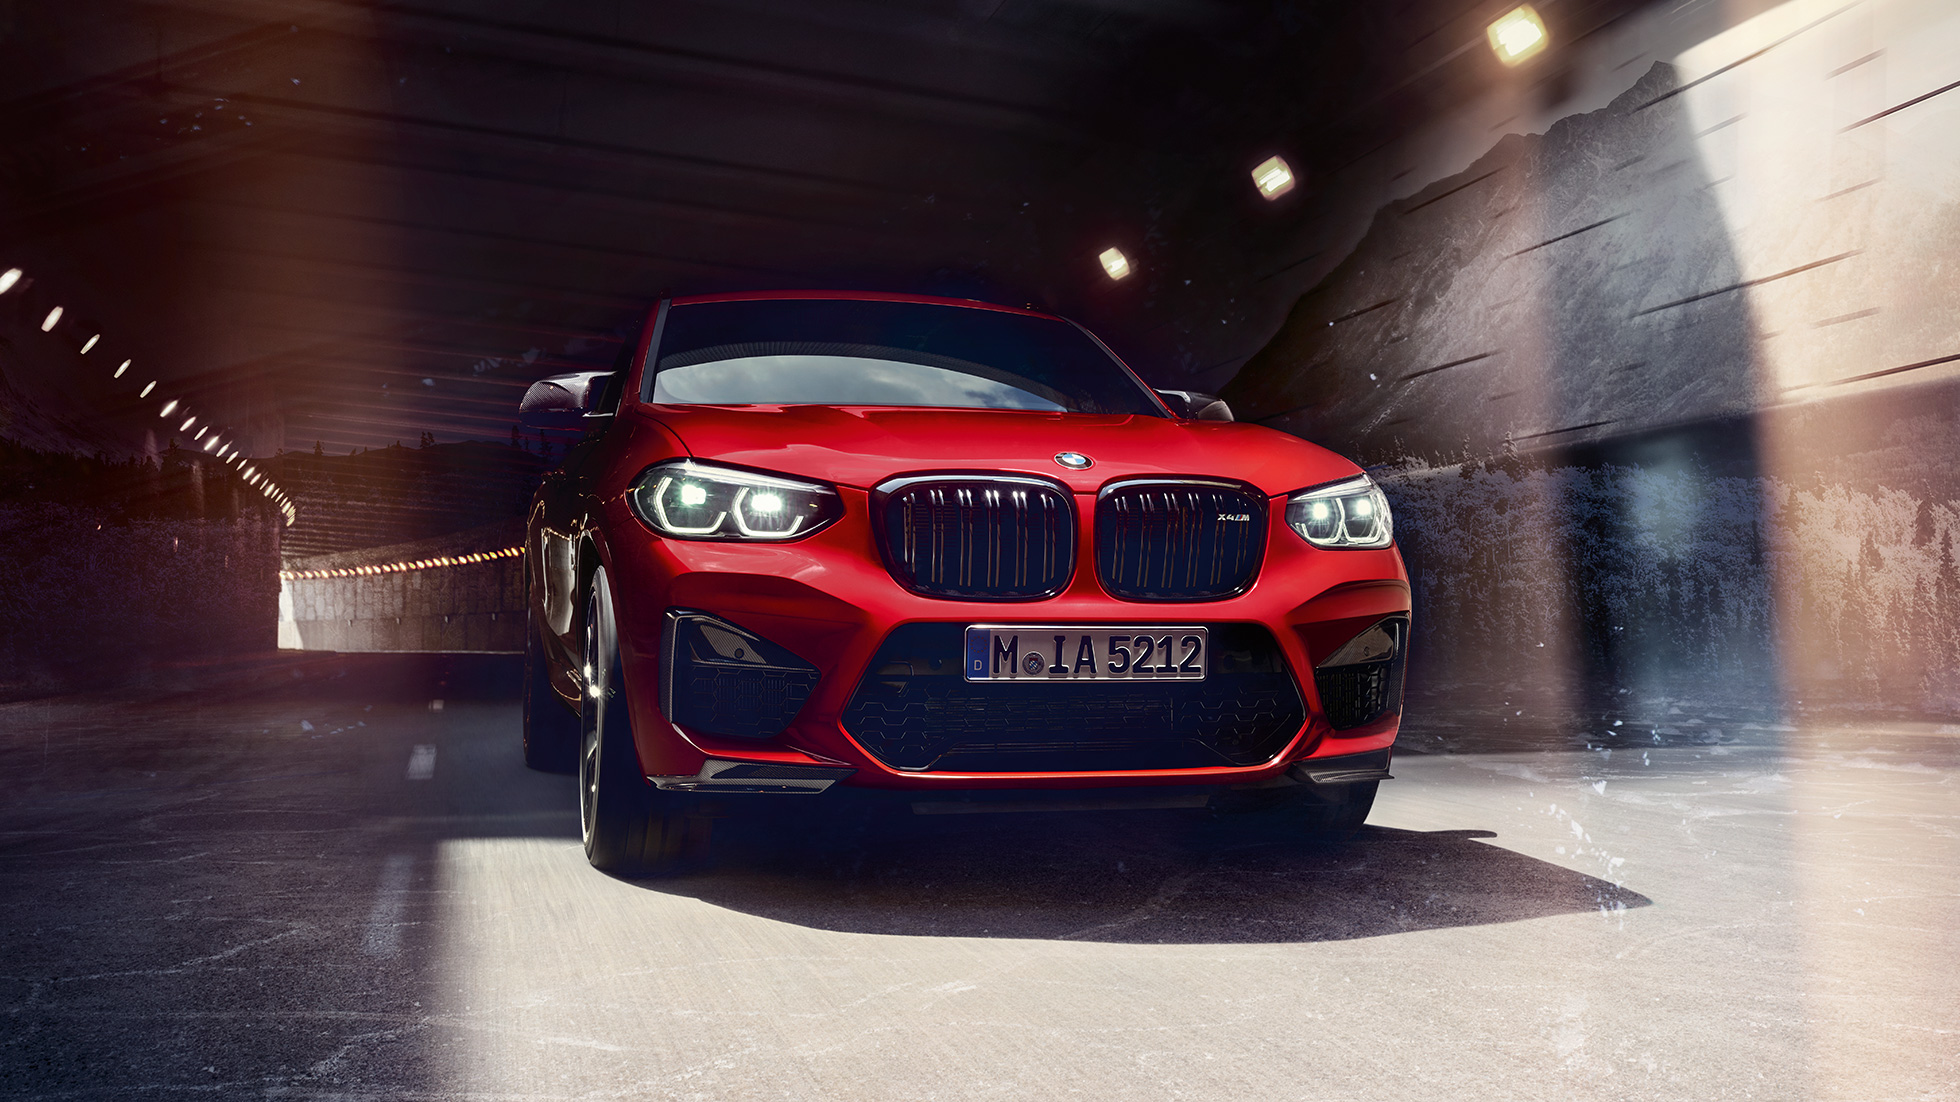 BMW X4 M Competition in Toronto Red metallic, exterior, three-quarter front view.